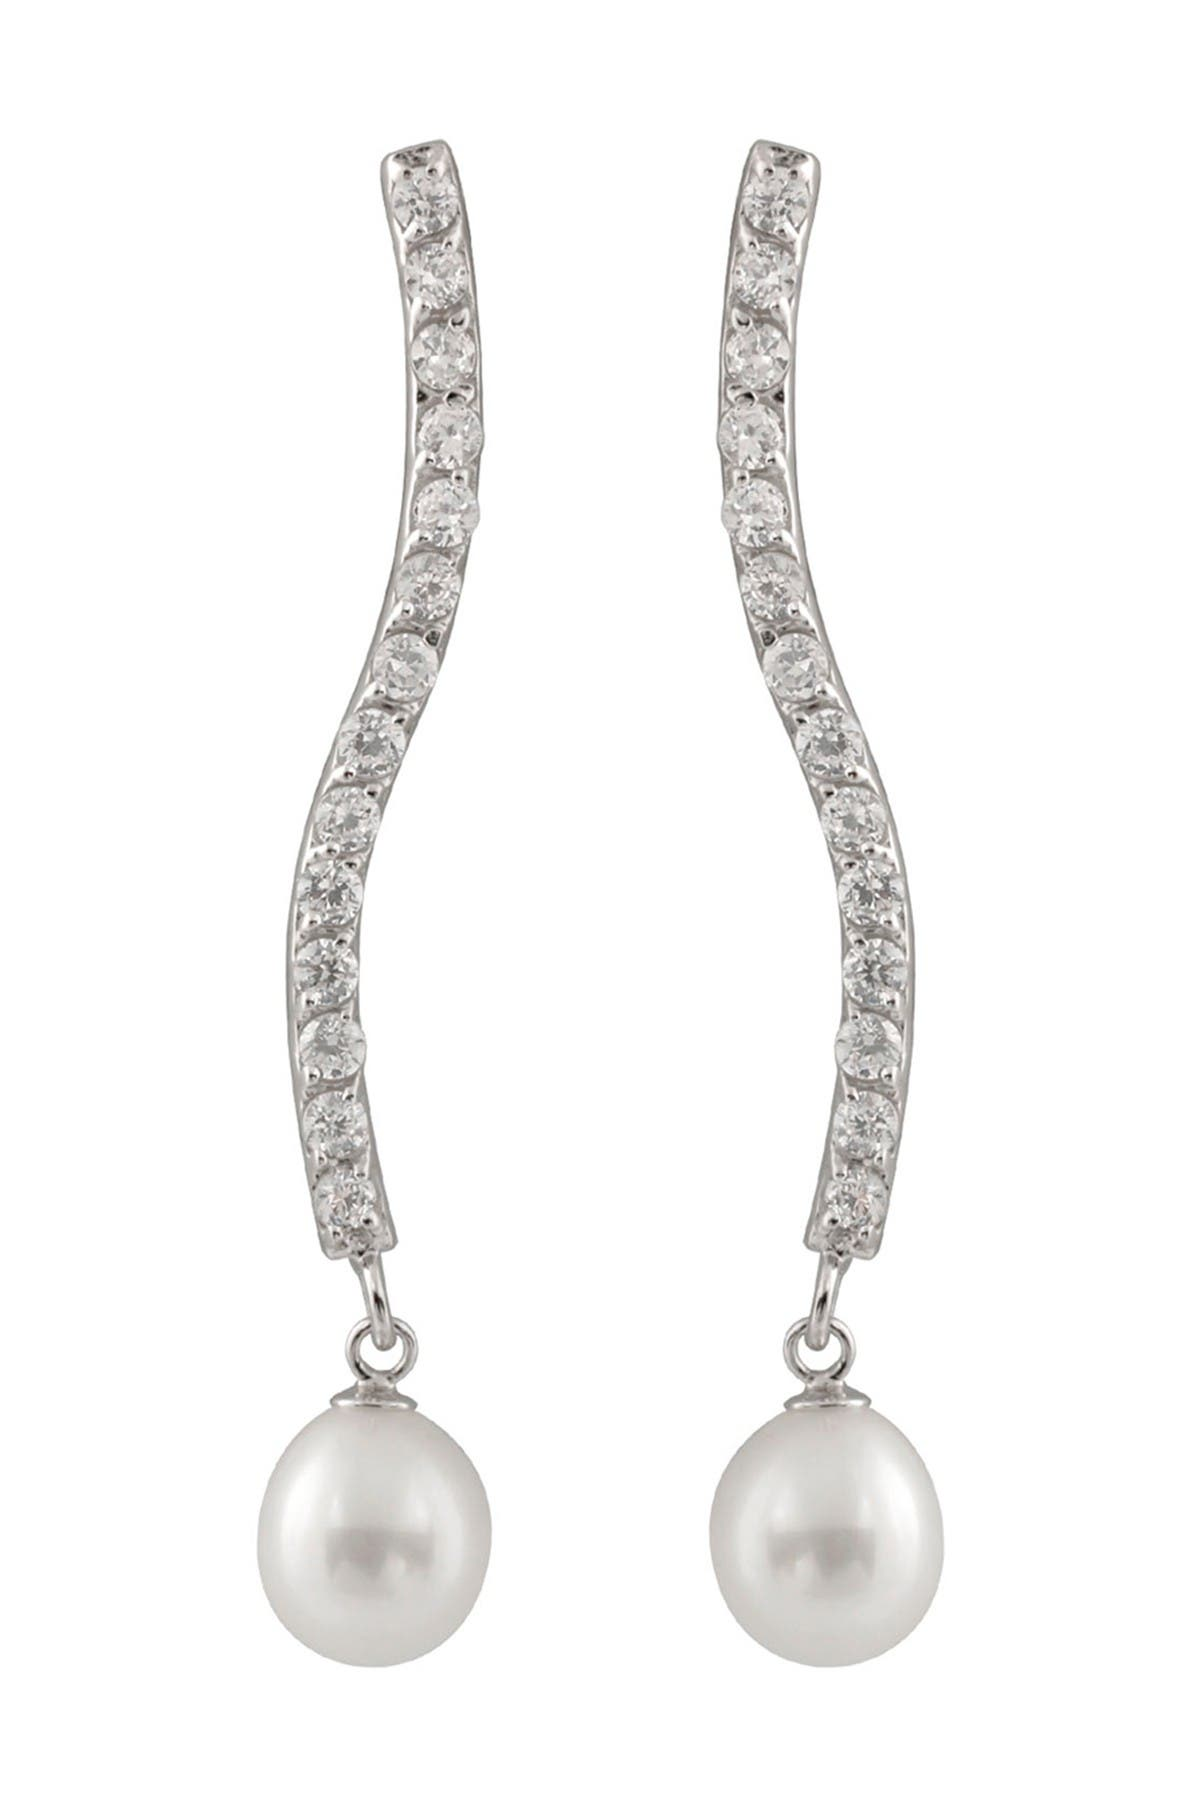 Image of Splendid Pearls 8-8.5mm Cultured Freshwater Pearl CZ Curved Bar Earrings